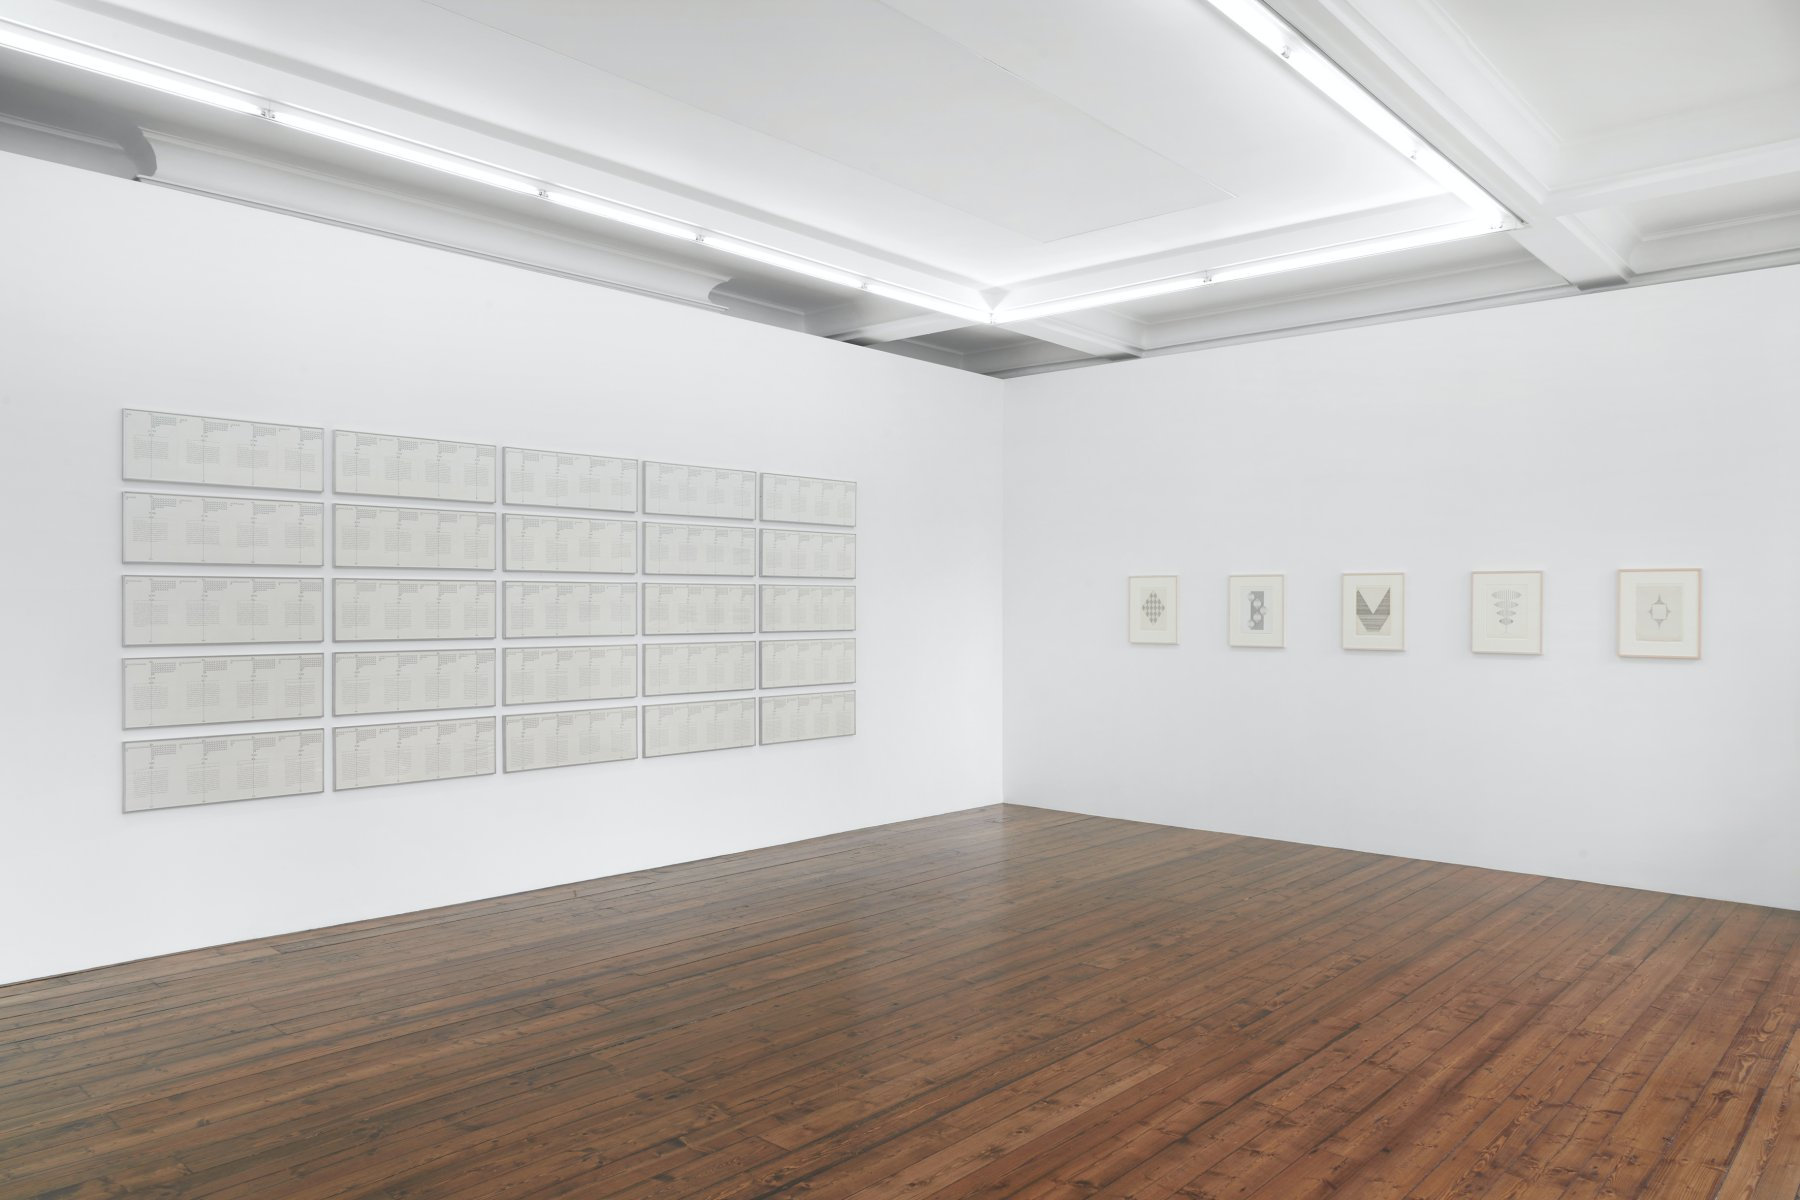 Spruth Magers London Hanne Darboven and Ruth Wolf-Rehfeldt New 1